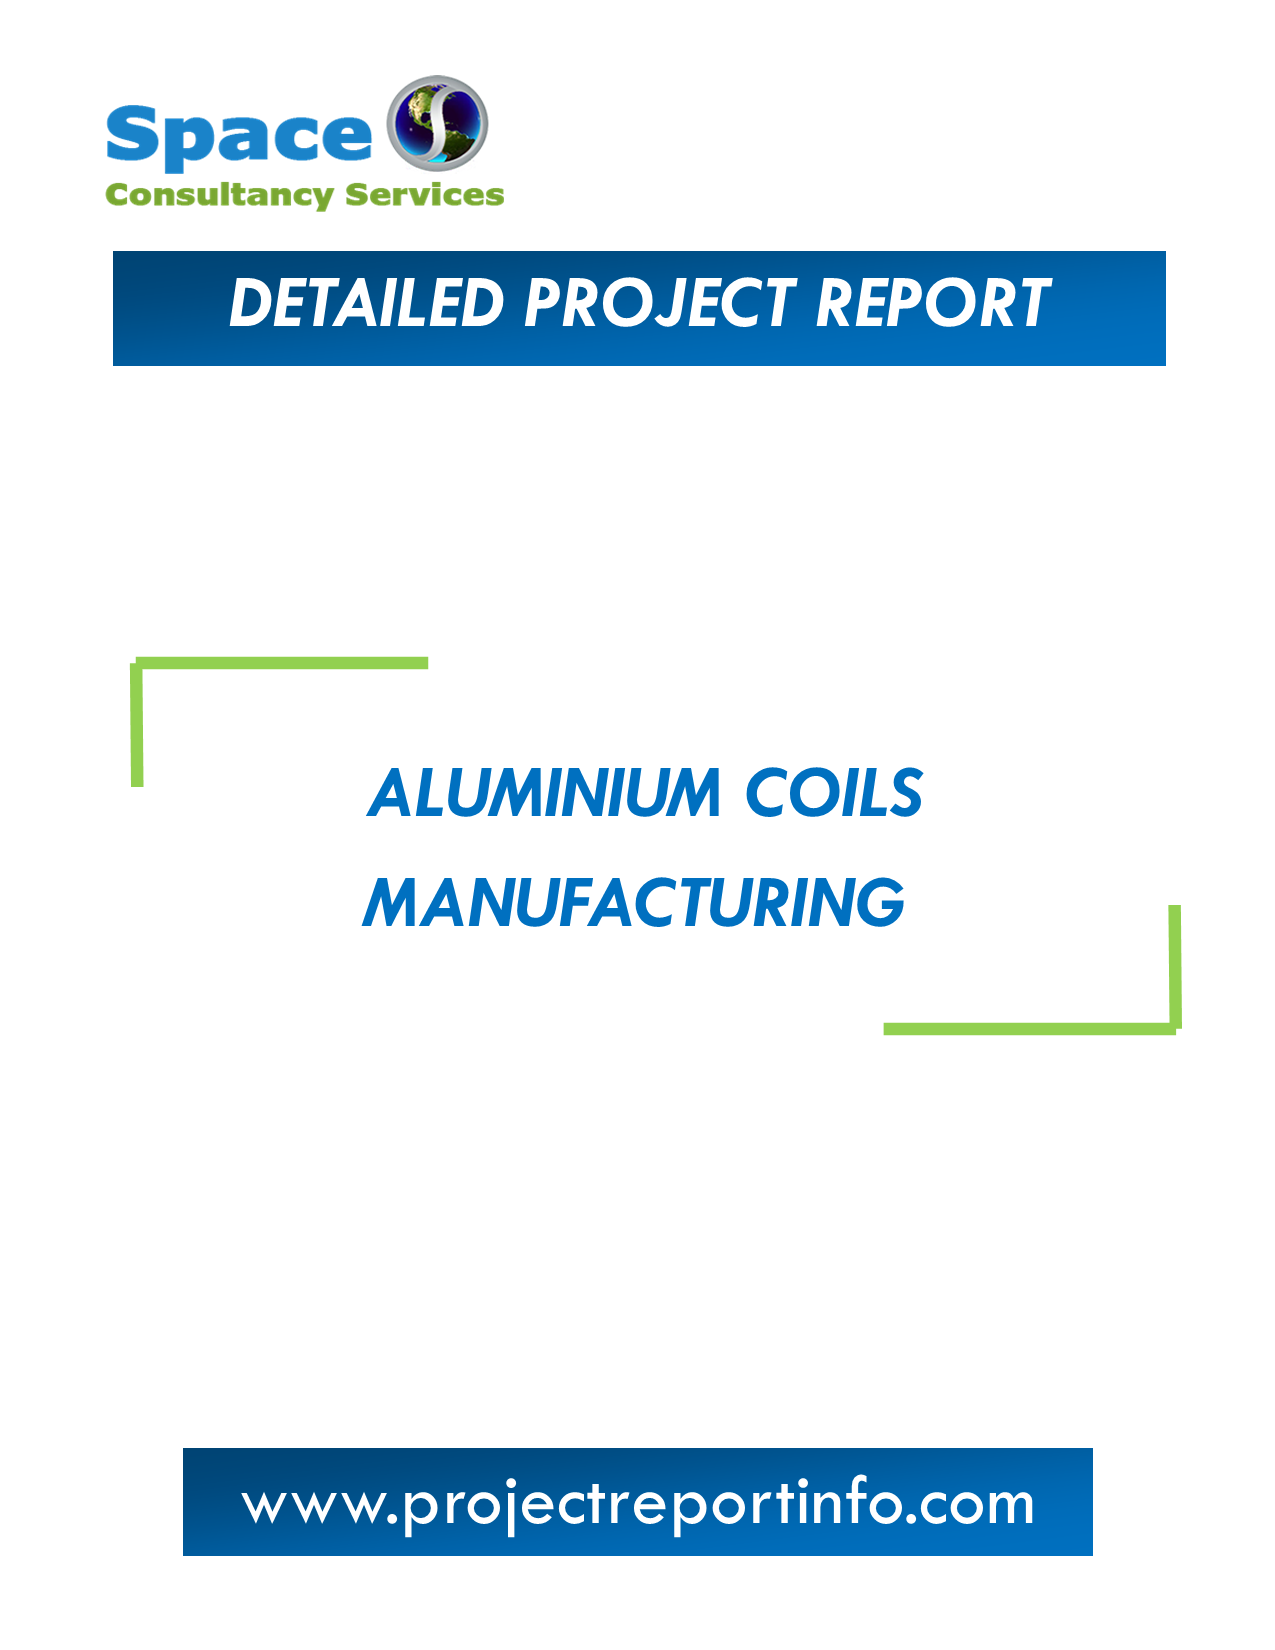 Project Report on Aluminium Coils Manufacturing